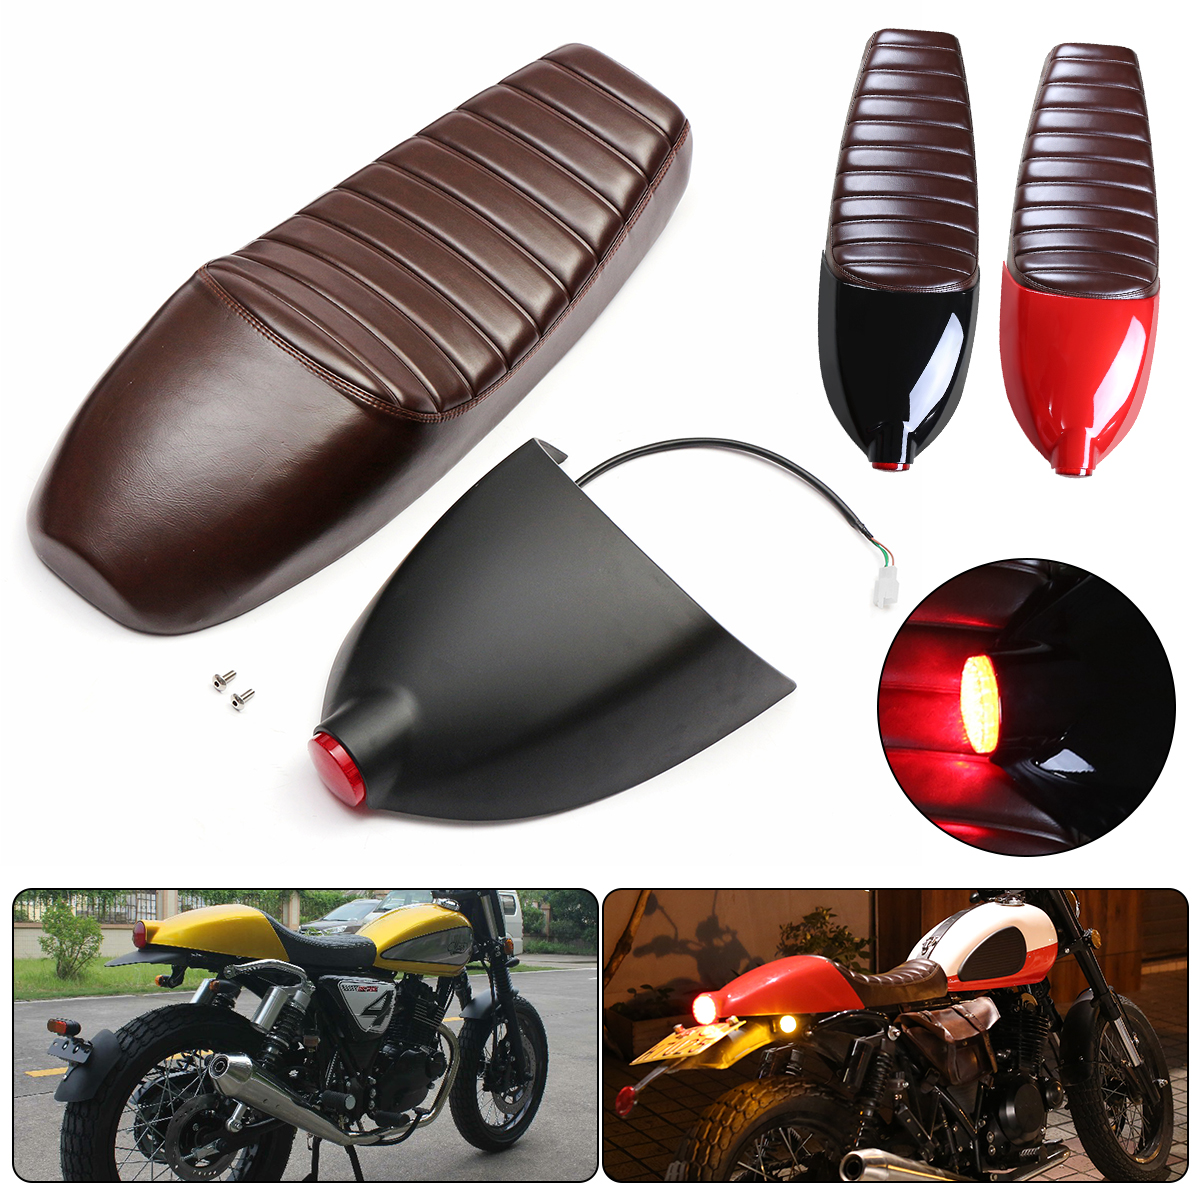 Moto Seat Cover with LED Light For Honda for Suzuki for Yamaha Motorcycle Cafe Racer Seat Refit Saddle with Tail Light new summer cool 3d mesh motorcycle seat cover breathable sun proof motorbike scooter seat covers cushion for honda yamaha suzuki